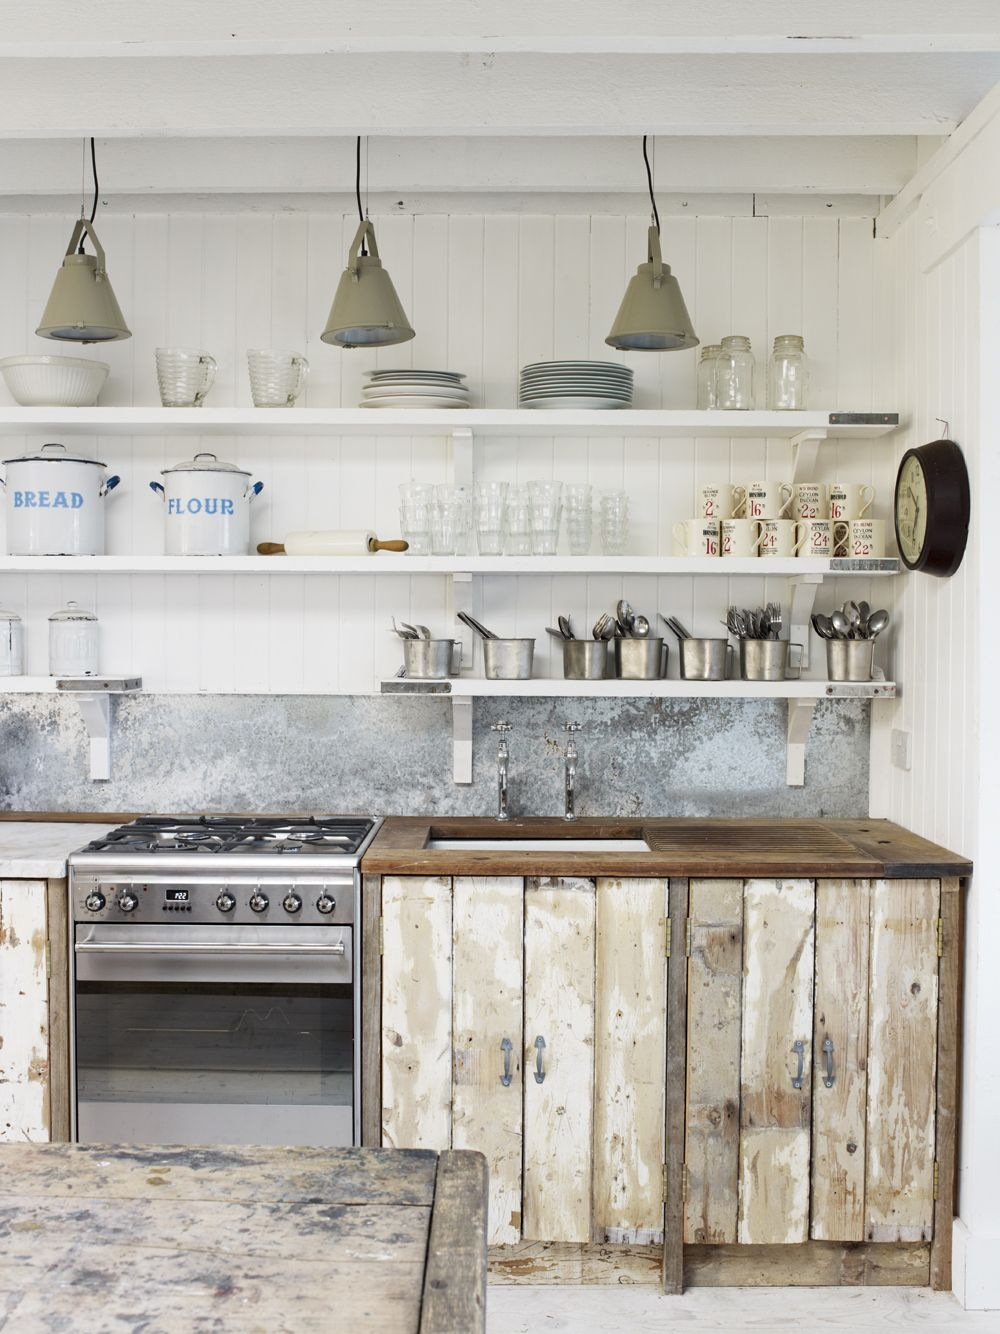 The White Cabin Country Kitchen Designs Kitchen Inspiration Design Rustic Kitchen Cabinets